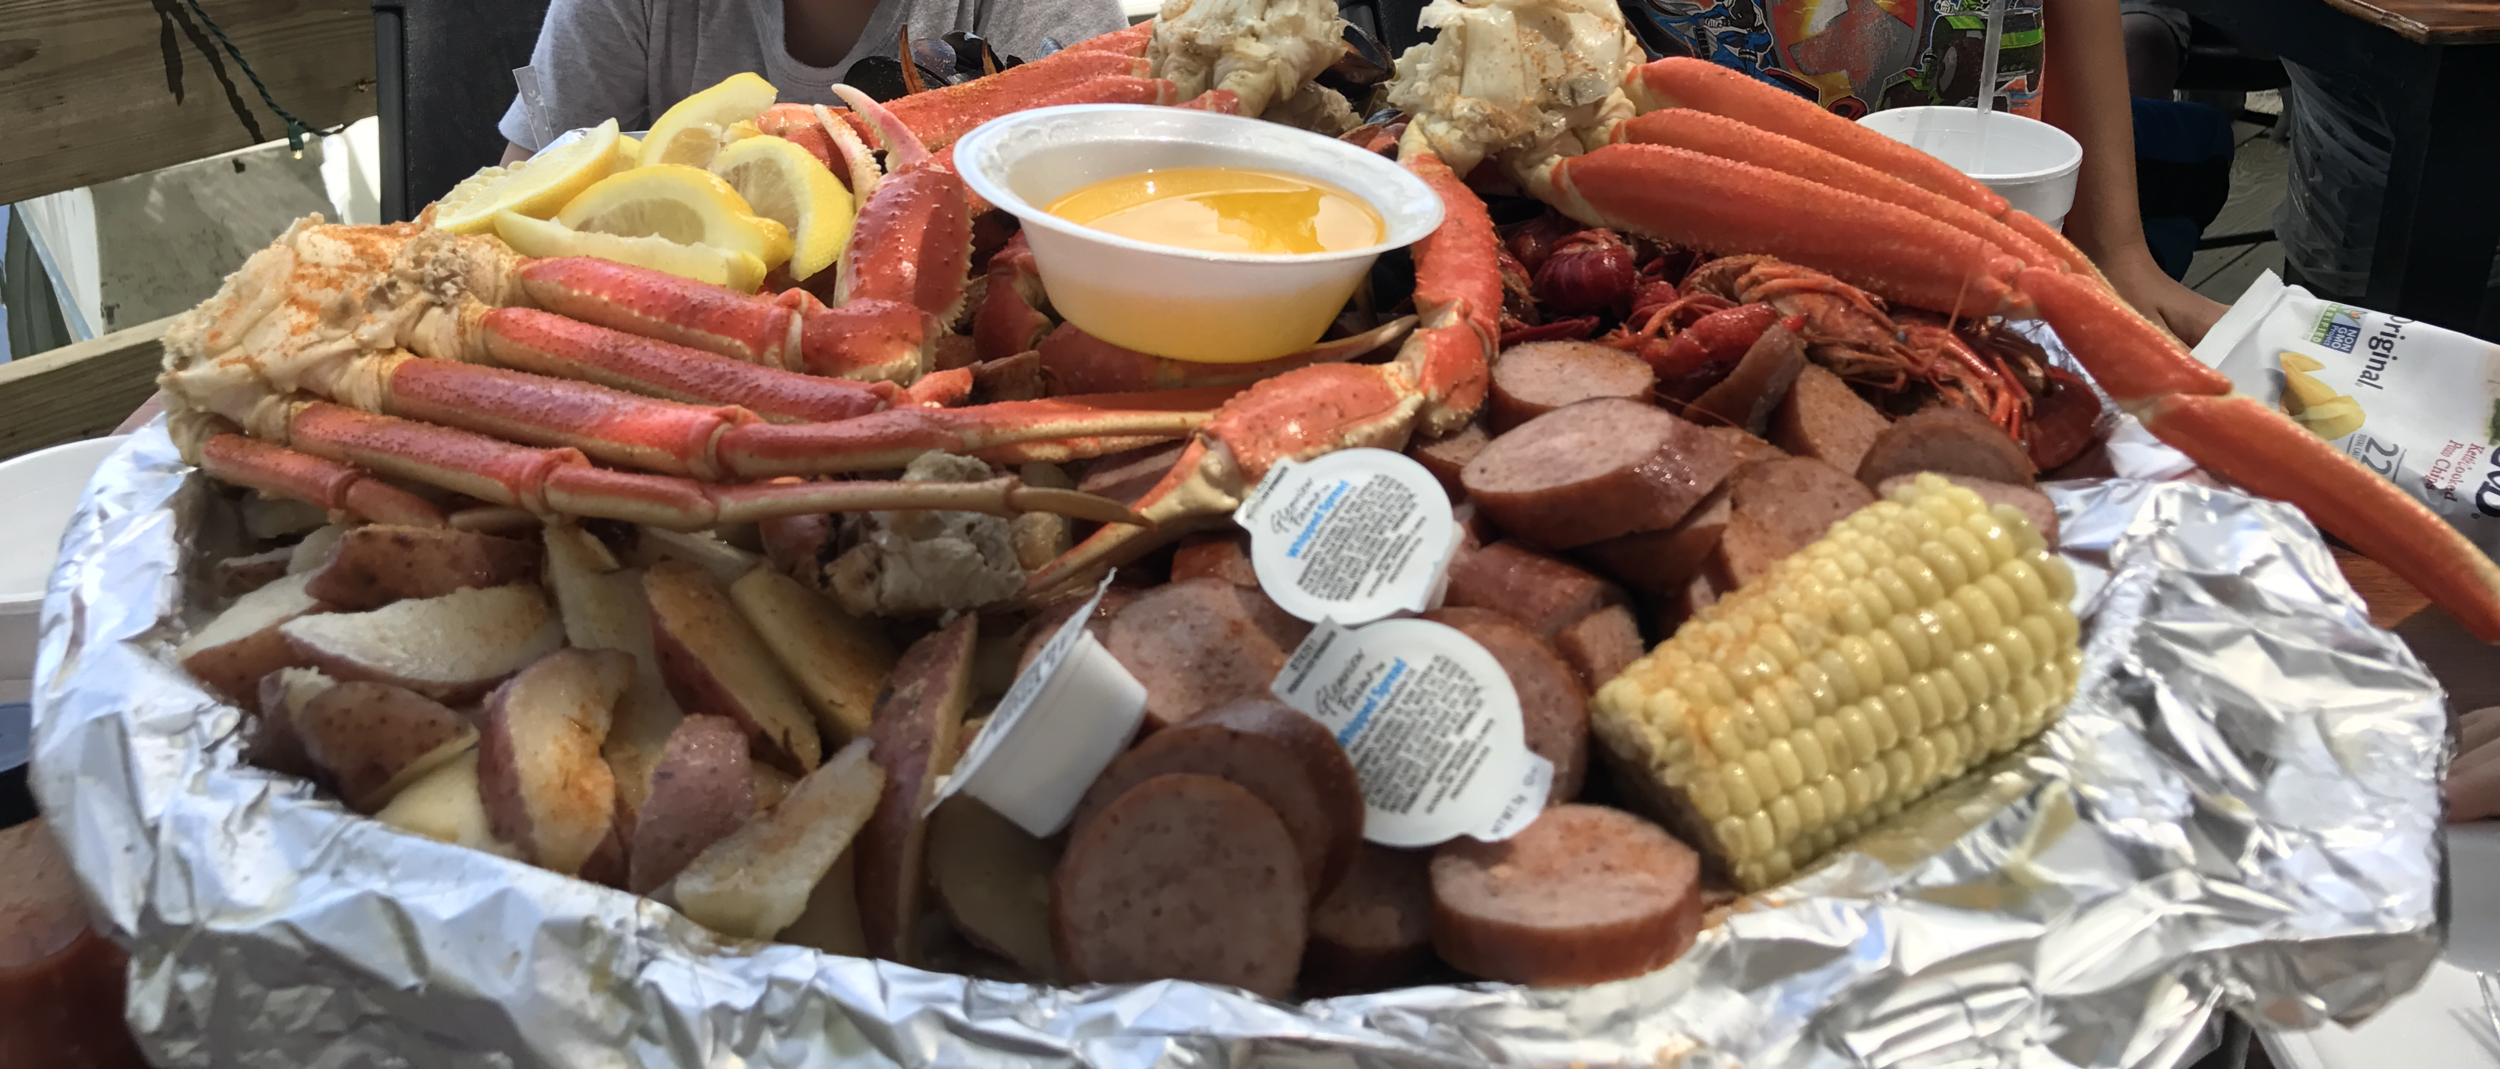 Feast on a low country boil at The Crab Shack on Tybee Island.  (click enlarge)